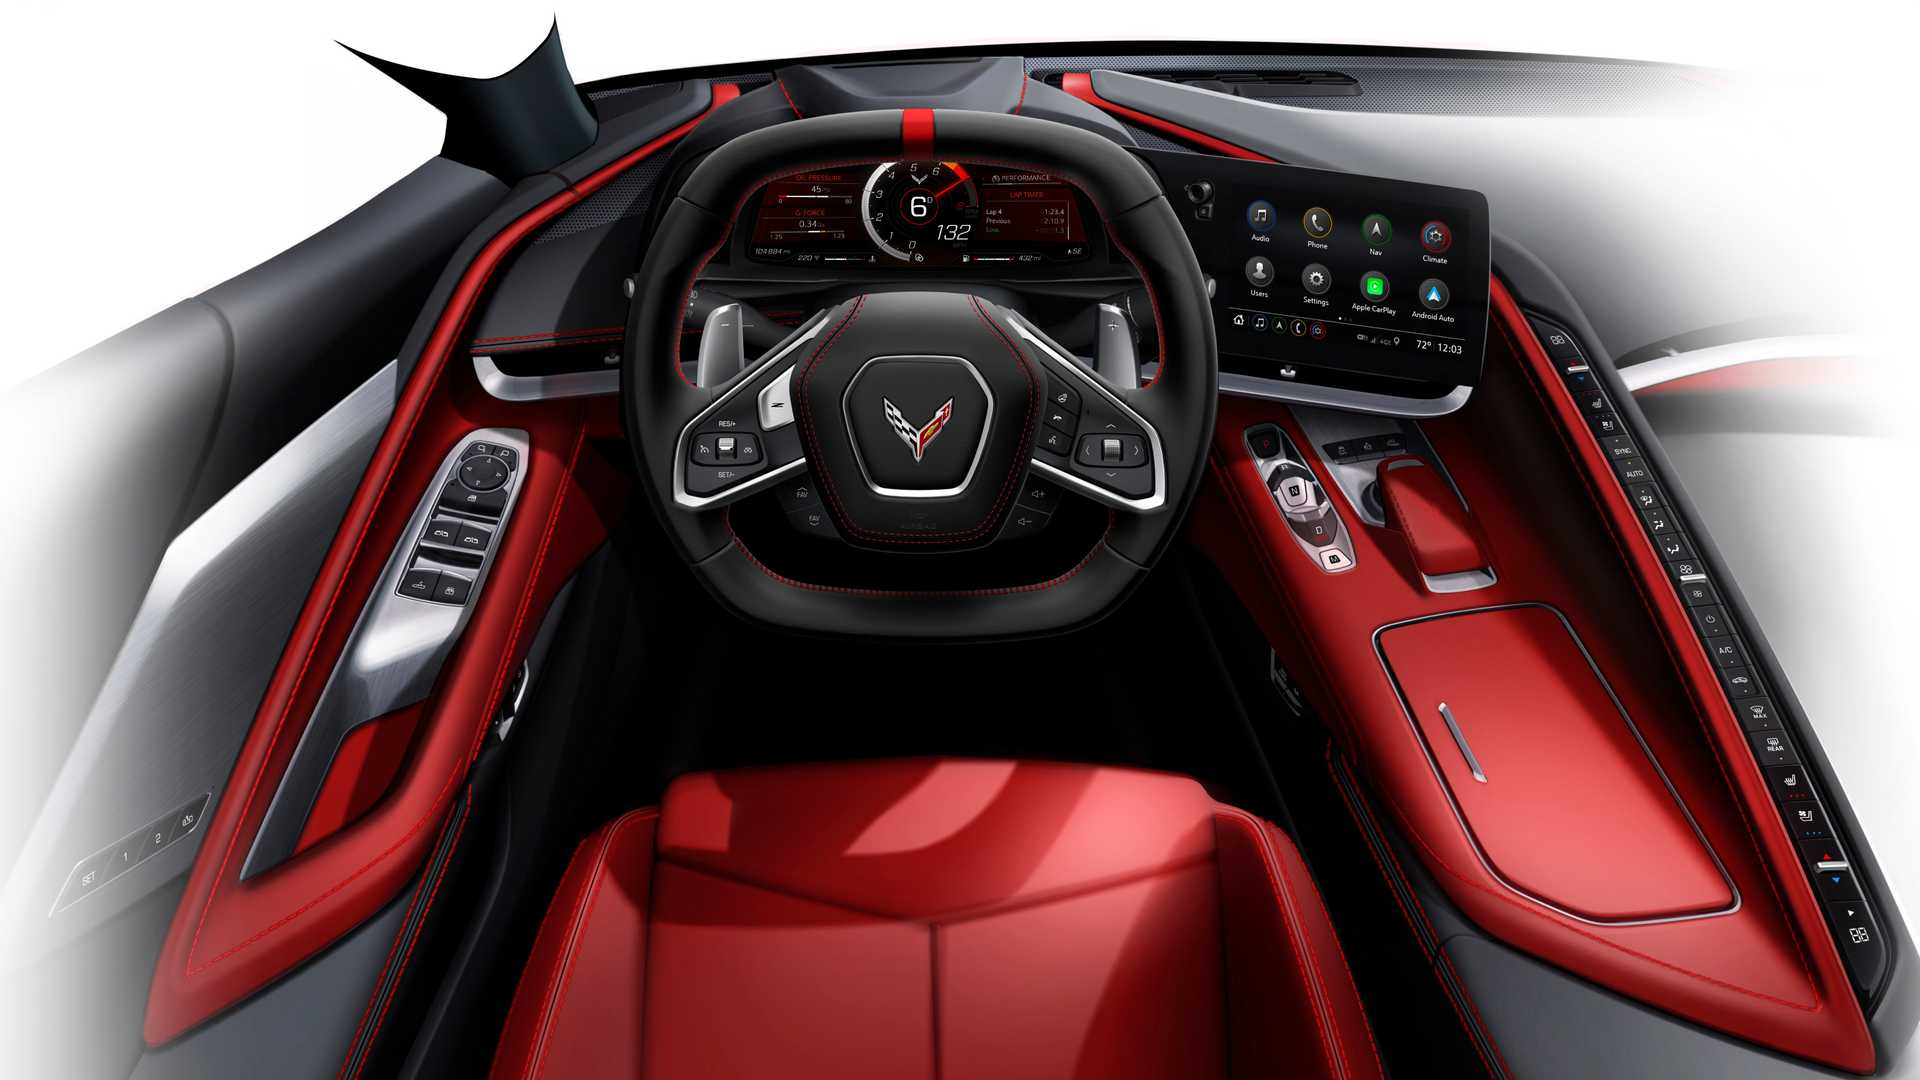 Chevy Corvette C8 Convertible Buttons Have Been Hiding In